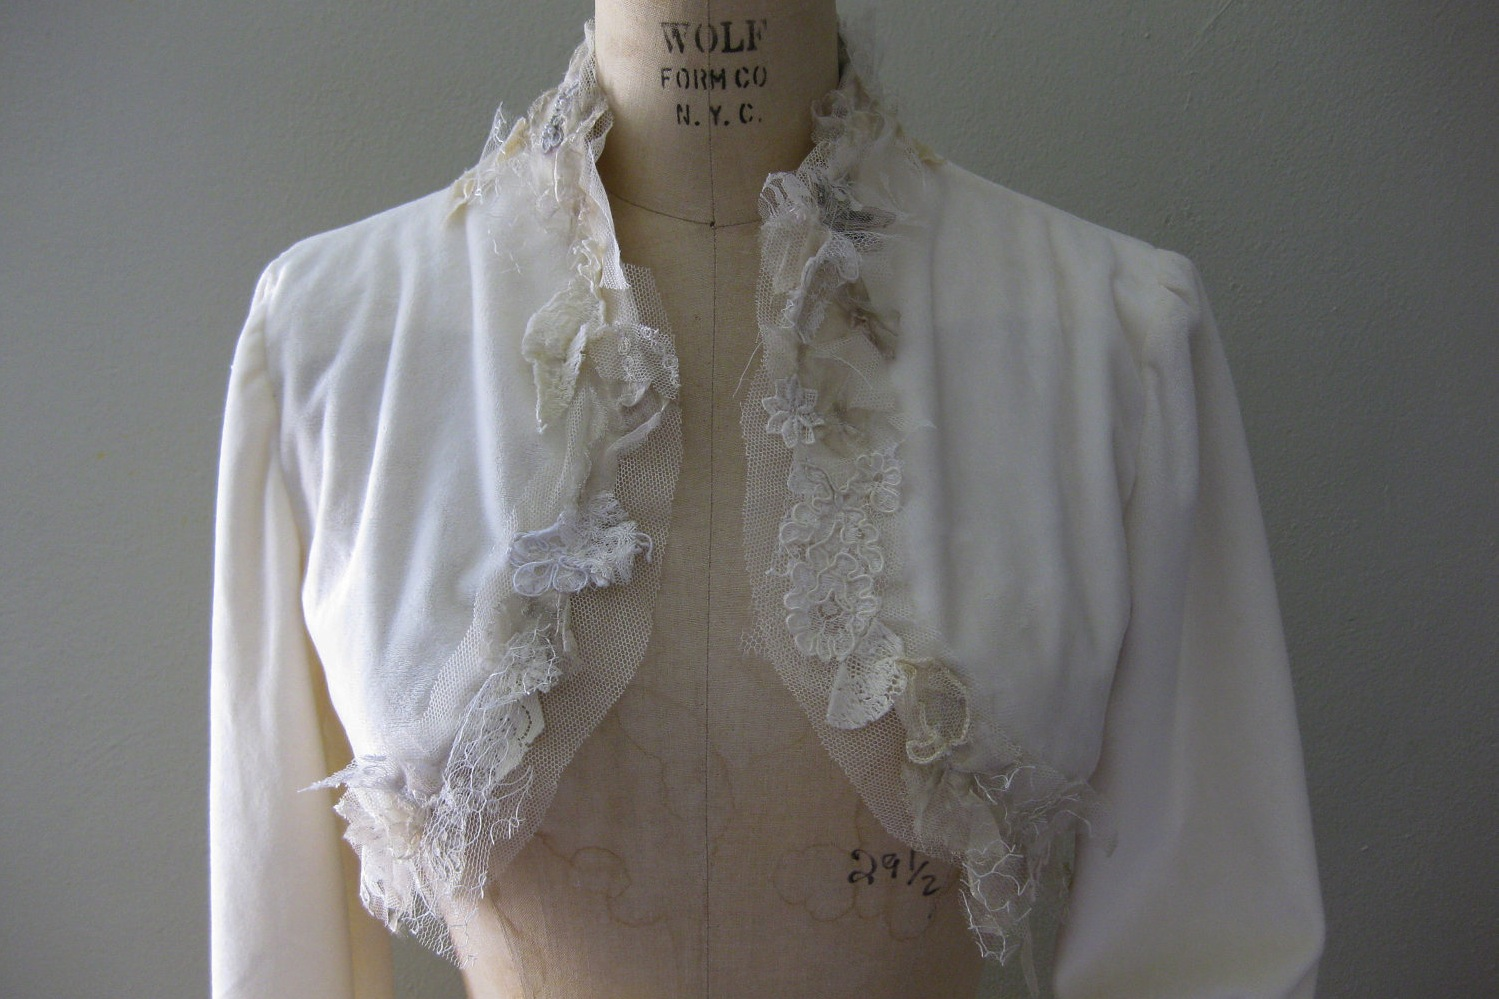 Fall-winter-wedding-ideas-handmade-velvet-treasures-from-etsy-bolero.original